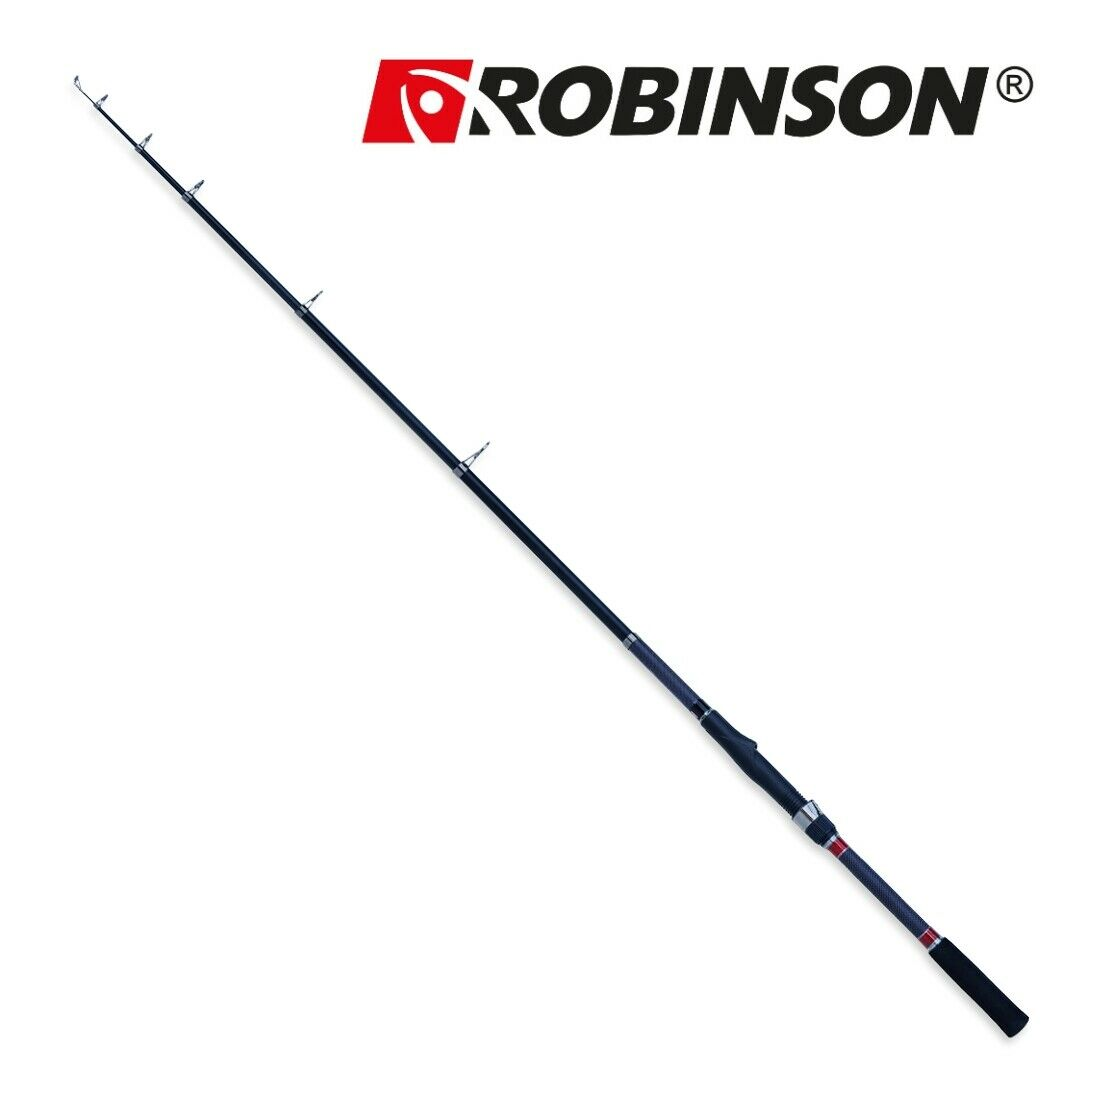 Karpfenrute Raubfischrute  ROBINSON CARBONIC T-STRONG  3,3m   370g   Wg.50-120g